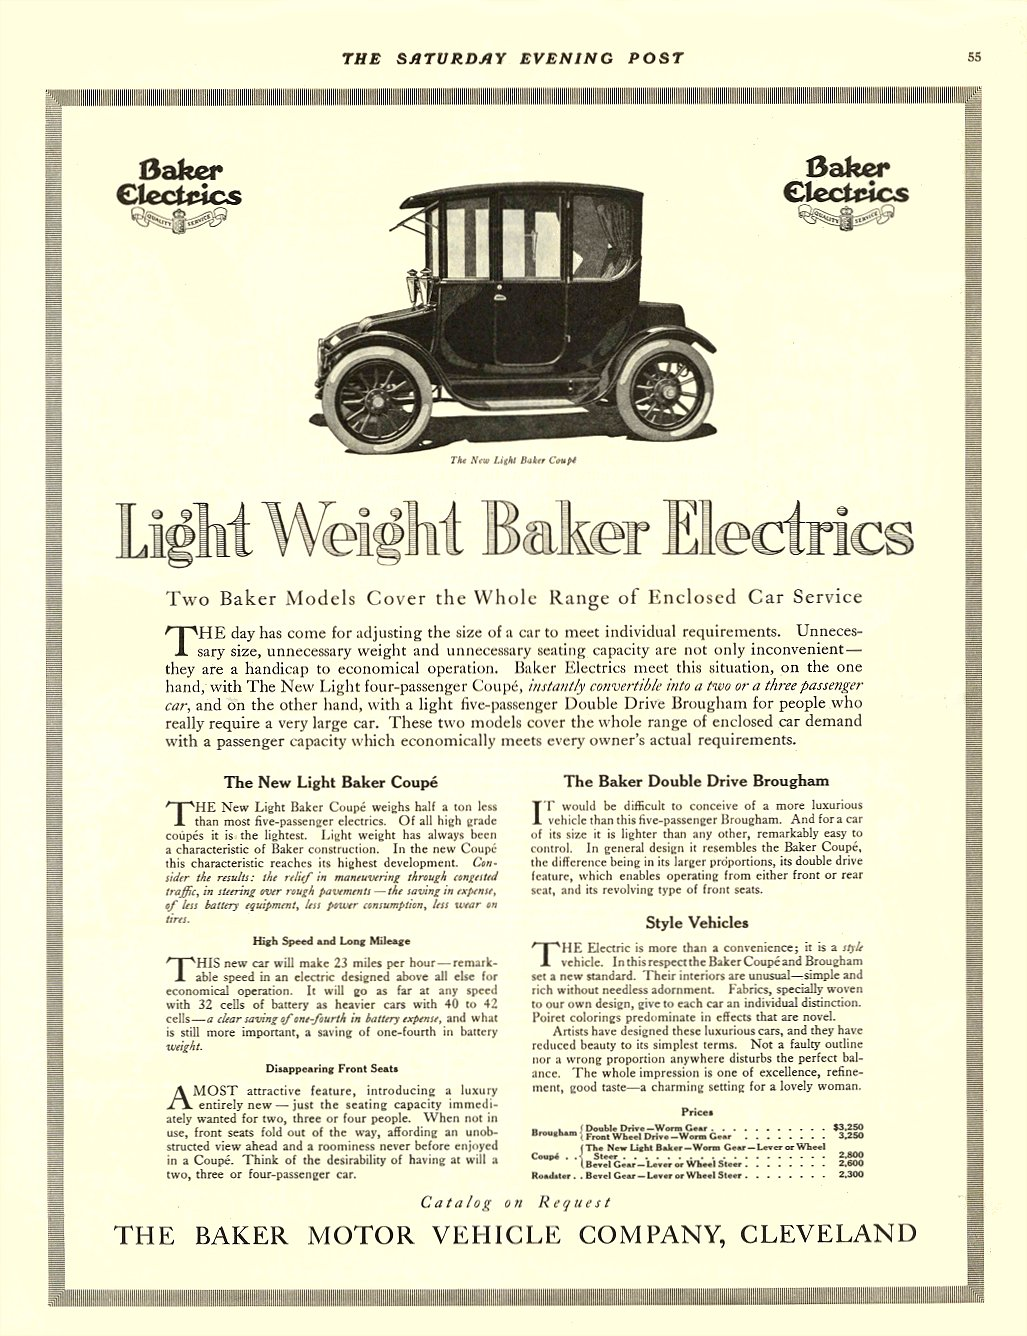 1914 11 21 BAKER Electric Light Weight Baker Electrics THE BAKER MOTOR VEHICLE COMPANY Cleveland, OHIO THE SATURDAY EVENING POST November 21, 1914 11″x14″ page 55